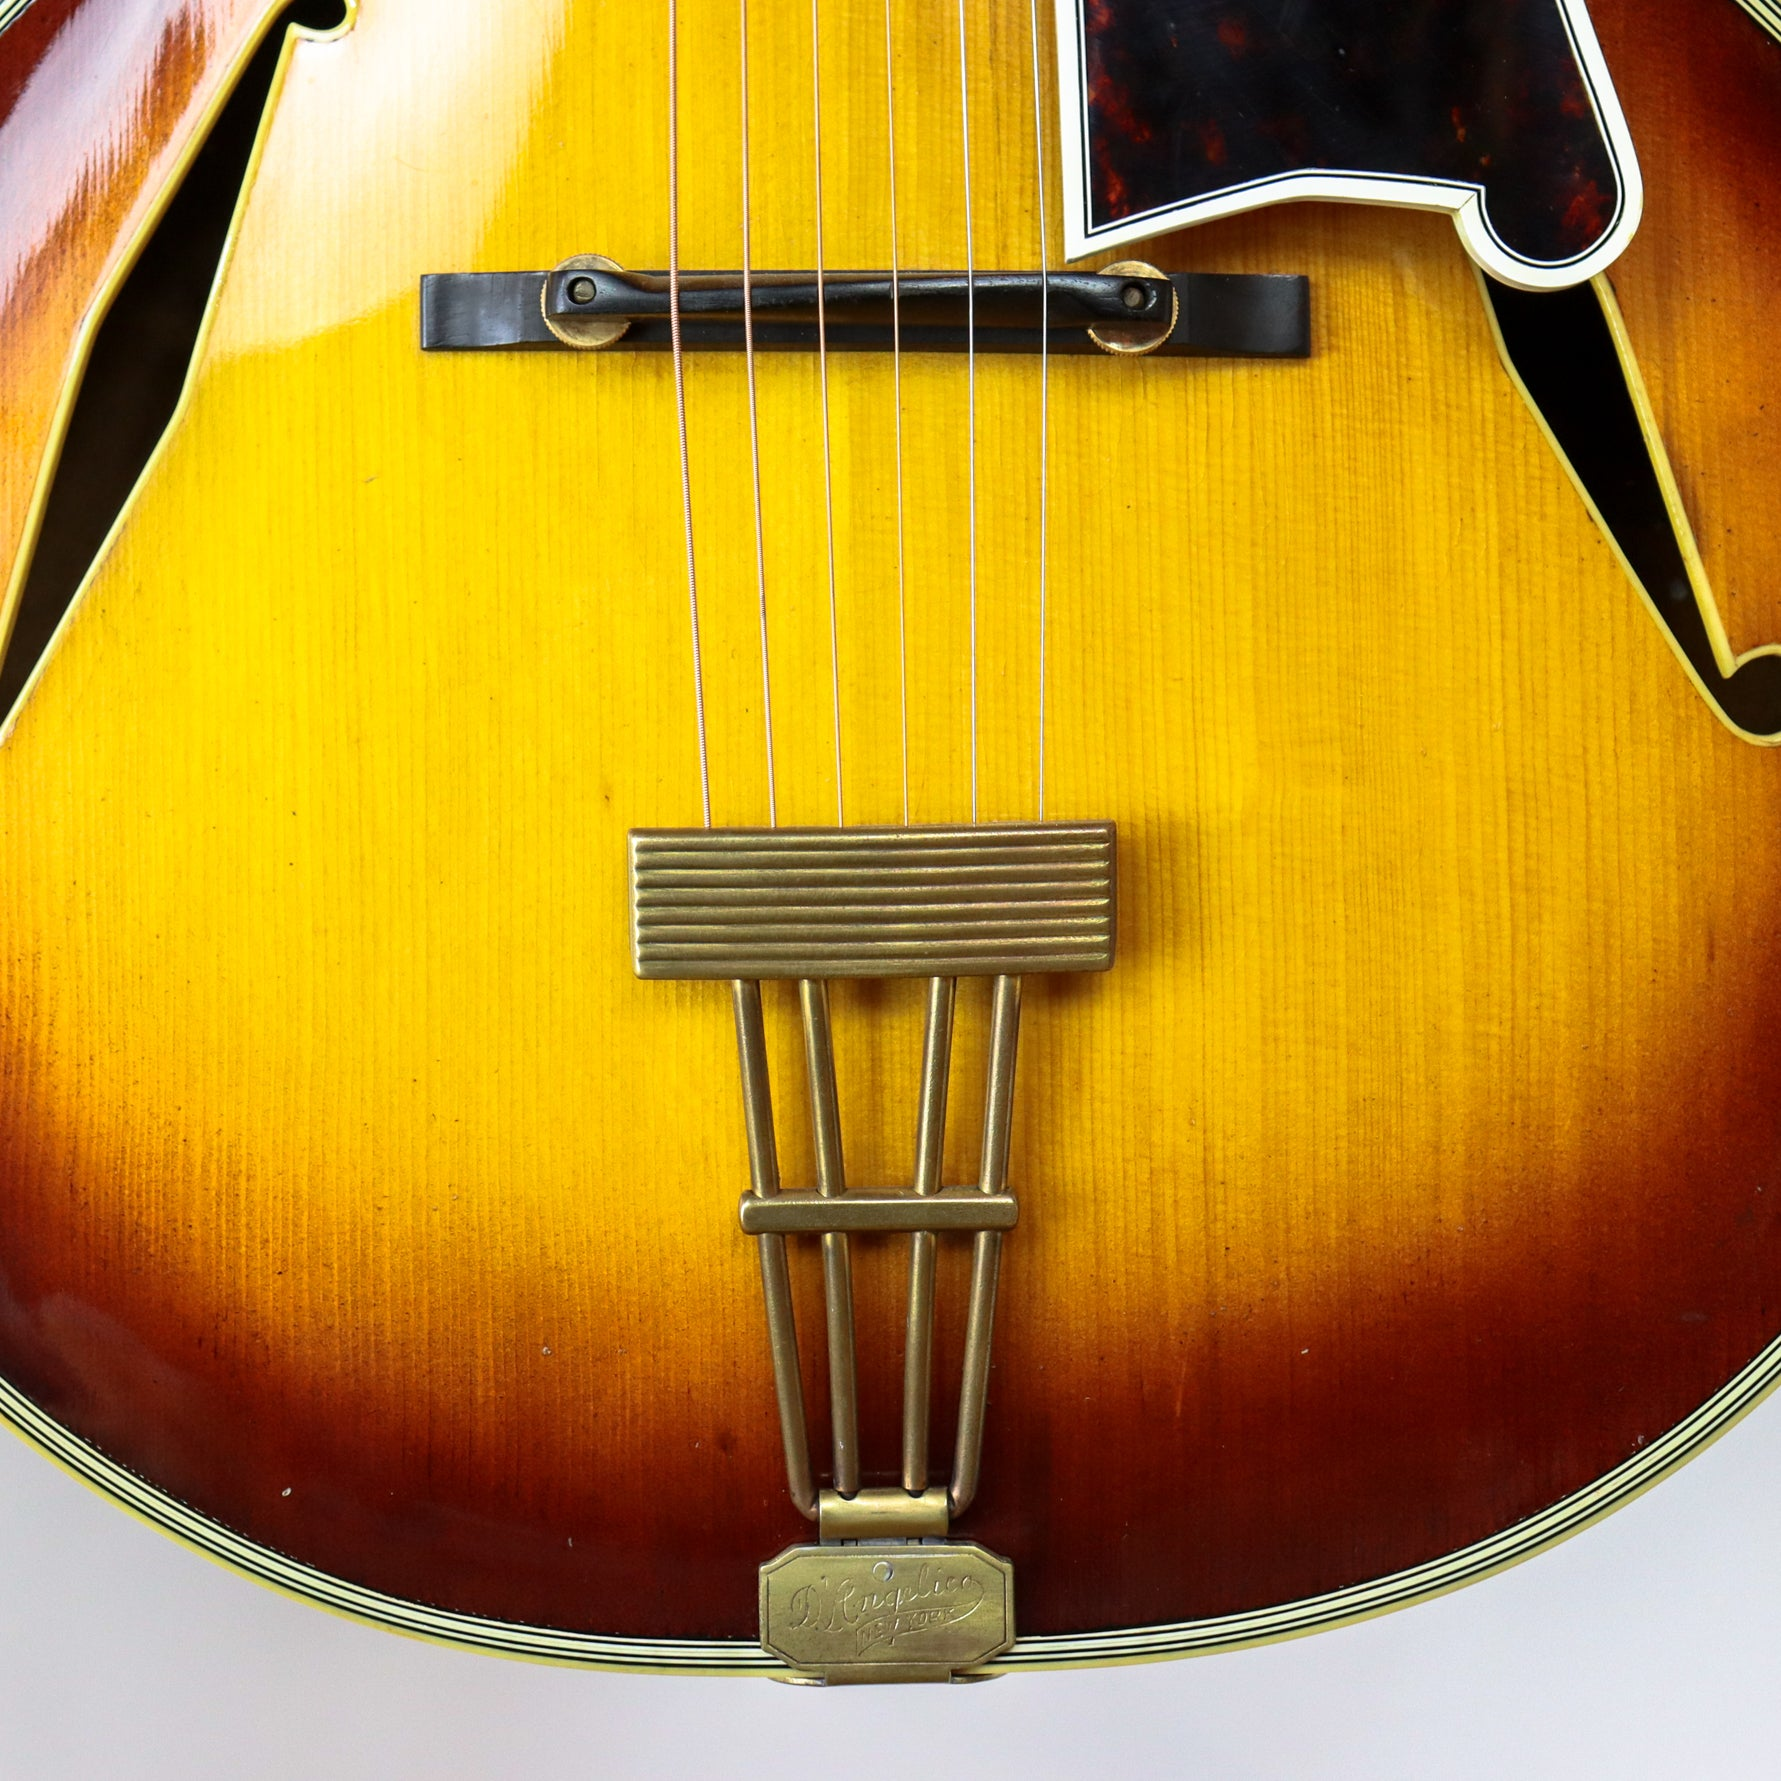 "D'Angelico 1936 Excel 17"" SN# 1189 with Hardshell Case"